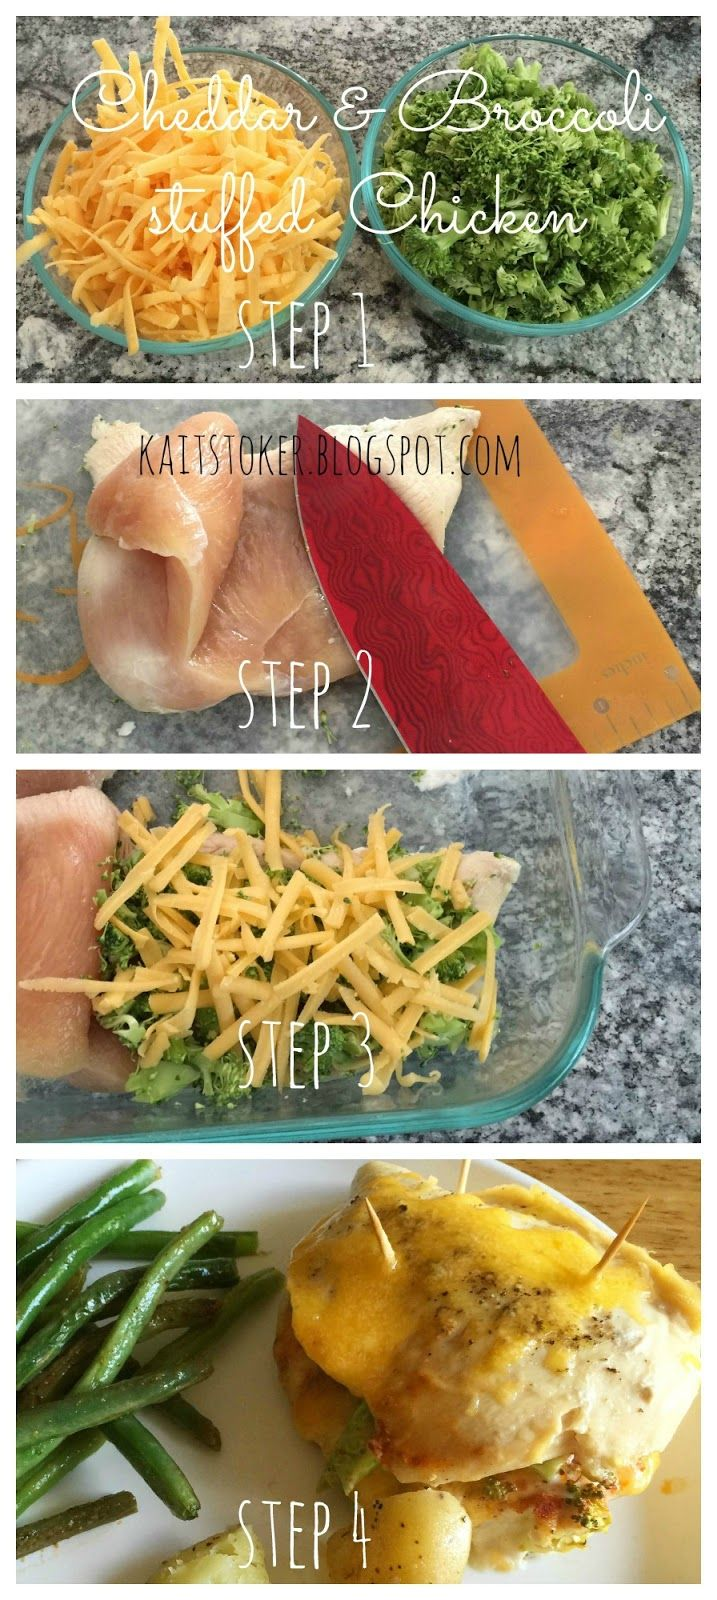 Fit For Me: Cheddar and Broccoli stuffed Chicken